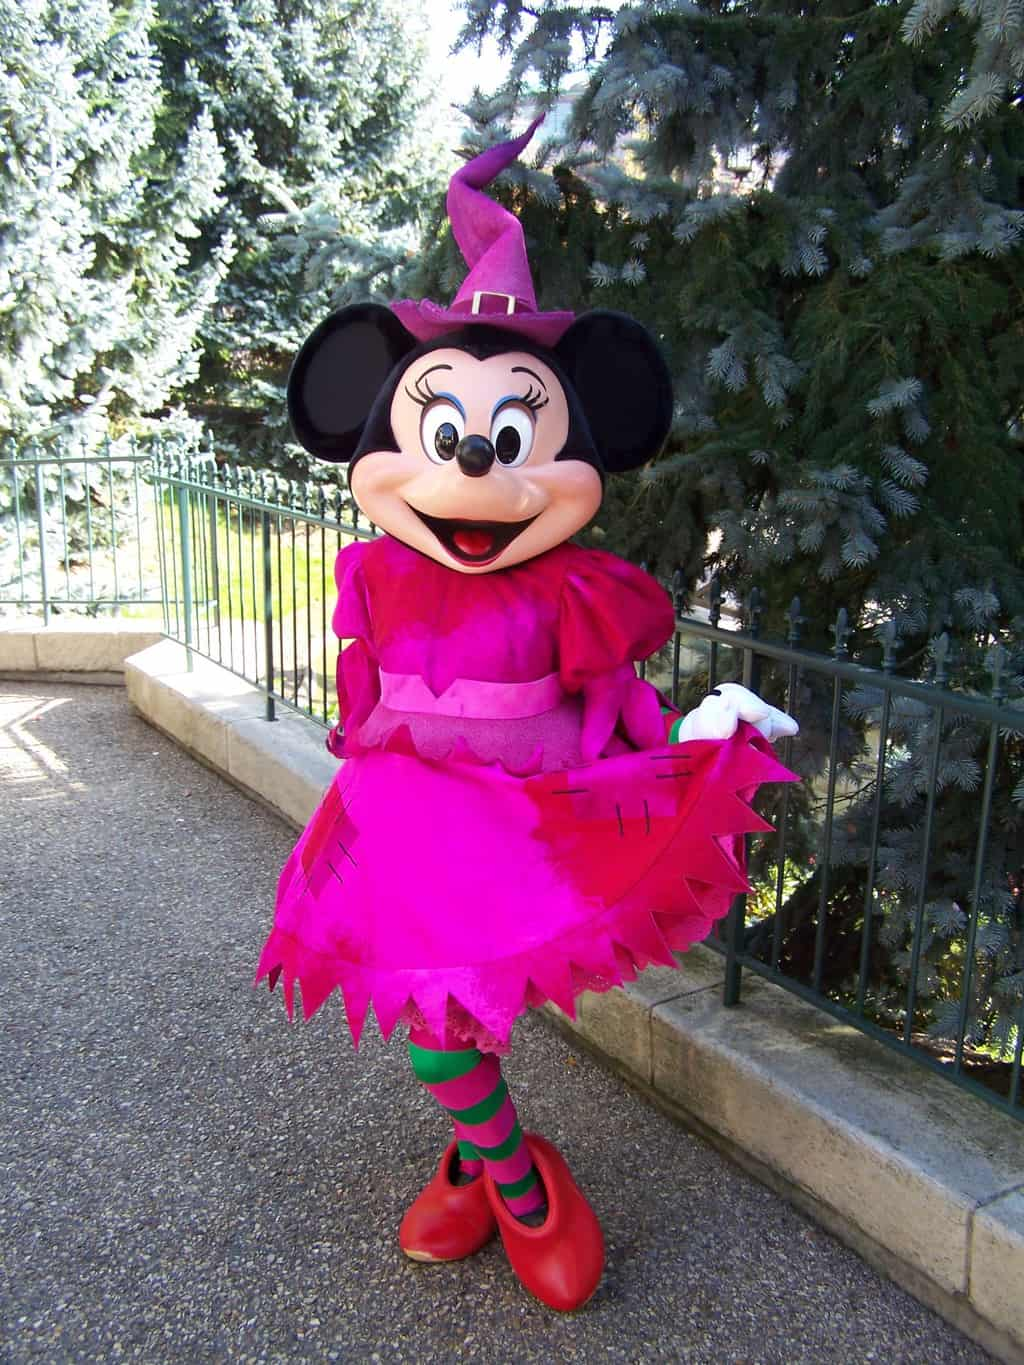 In 2007 Minnie was wearing her pink with outfit during several mini shows in the Disneyland Park.